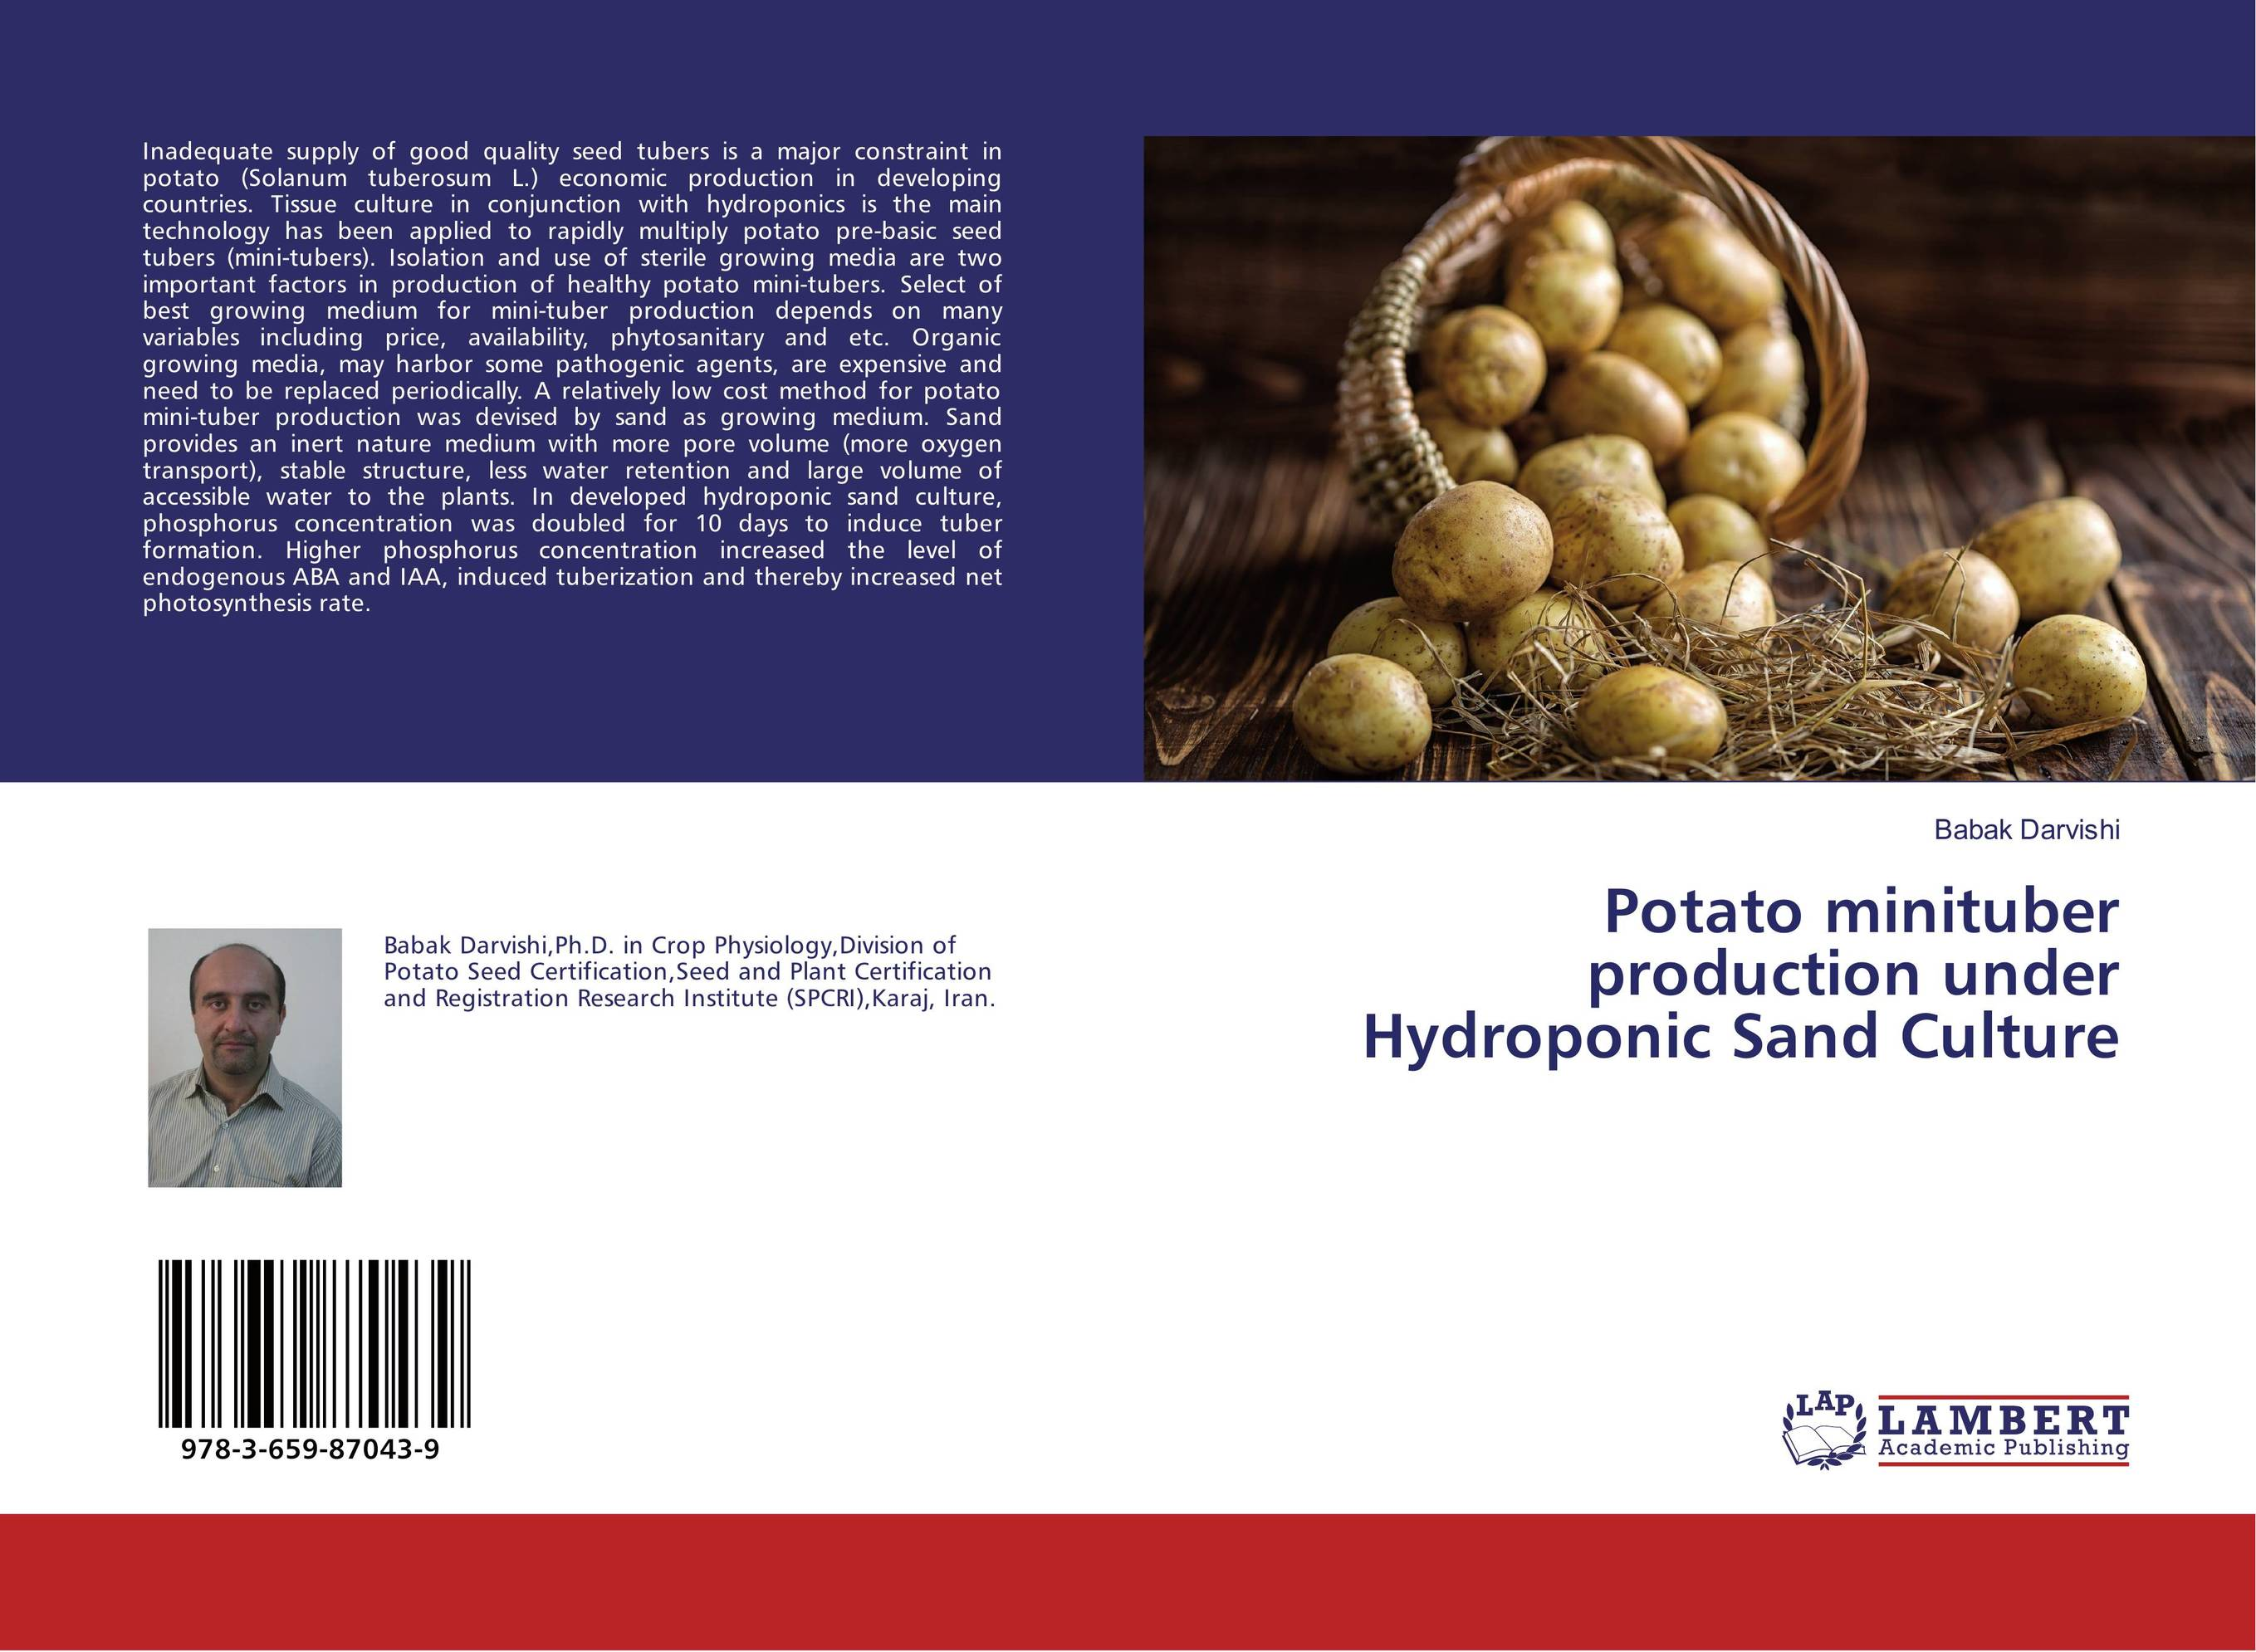 Potato minituber production under Hydroponic Sand Culture process technology for production of potato based snack